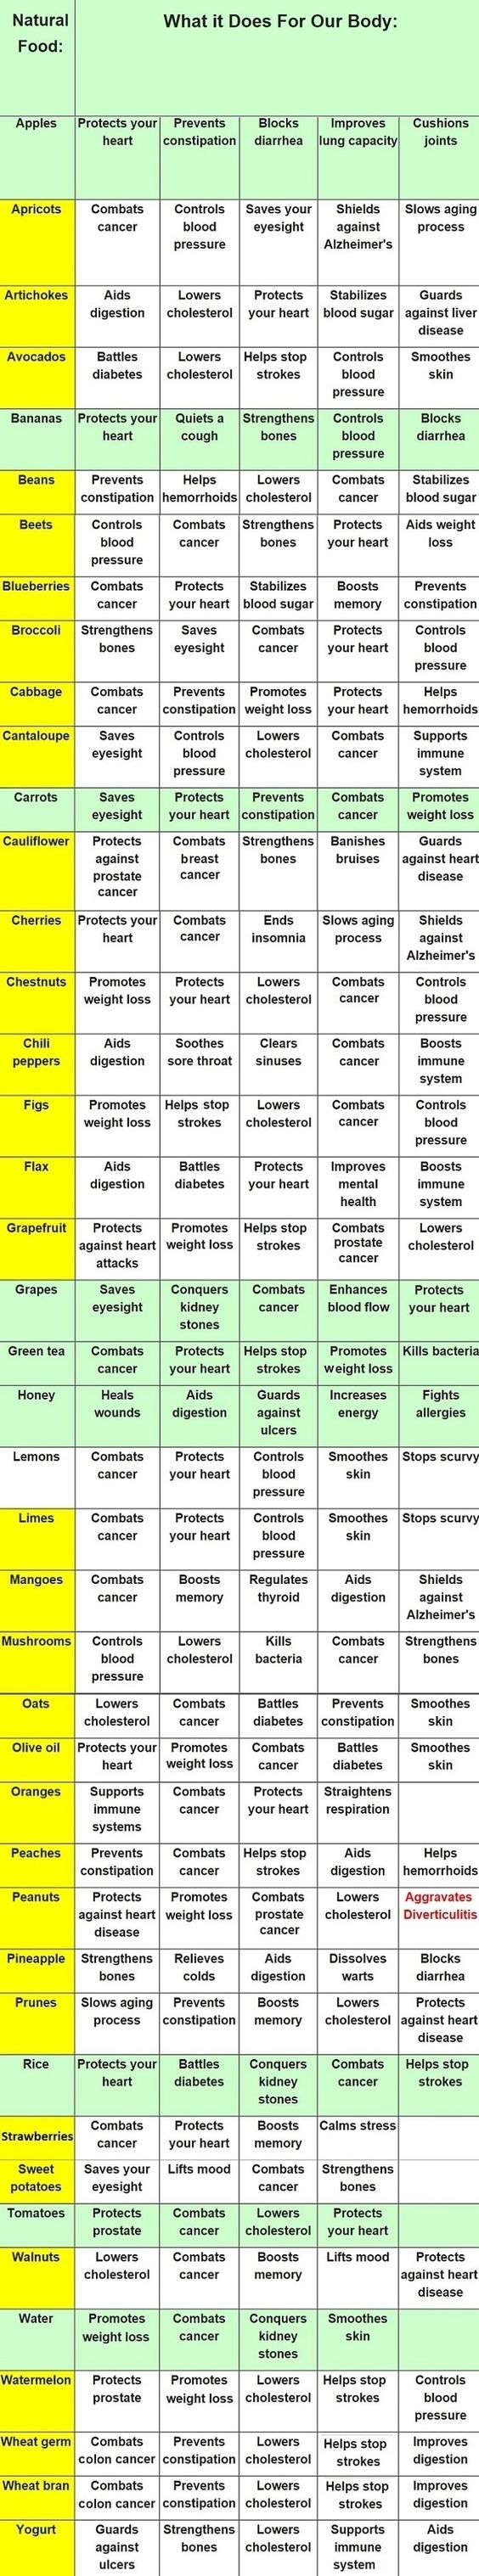 Foods and Their Health Benefits